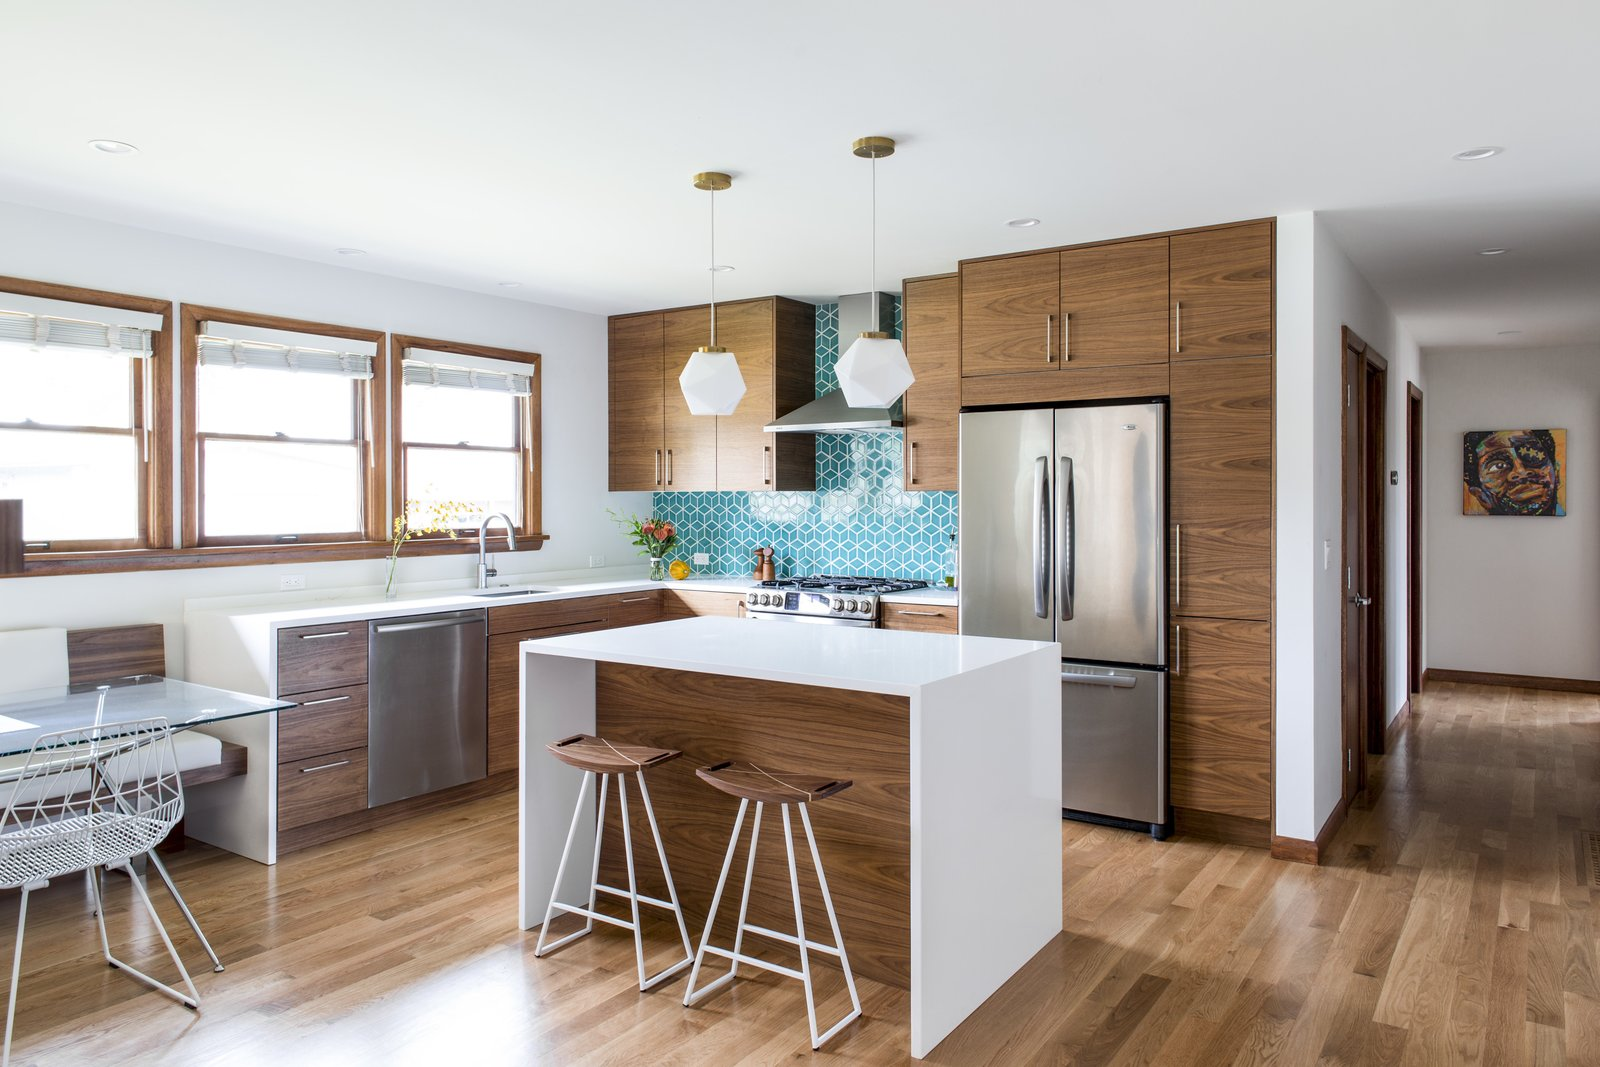 Kitchen, Refrigerator, Undermount, Recessed, Pendant, Ceramic Tile, Dishwasher, Medium Hardwood, Wood, Range, and Range Hood  Best Kitchen Wood Refrigerator Dishwasher Ceramic Tile Undermount Photos from What's the Most Overlooked Feature When Planning a Kitchen Renovation?